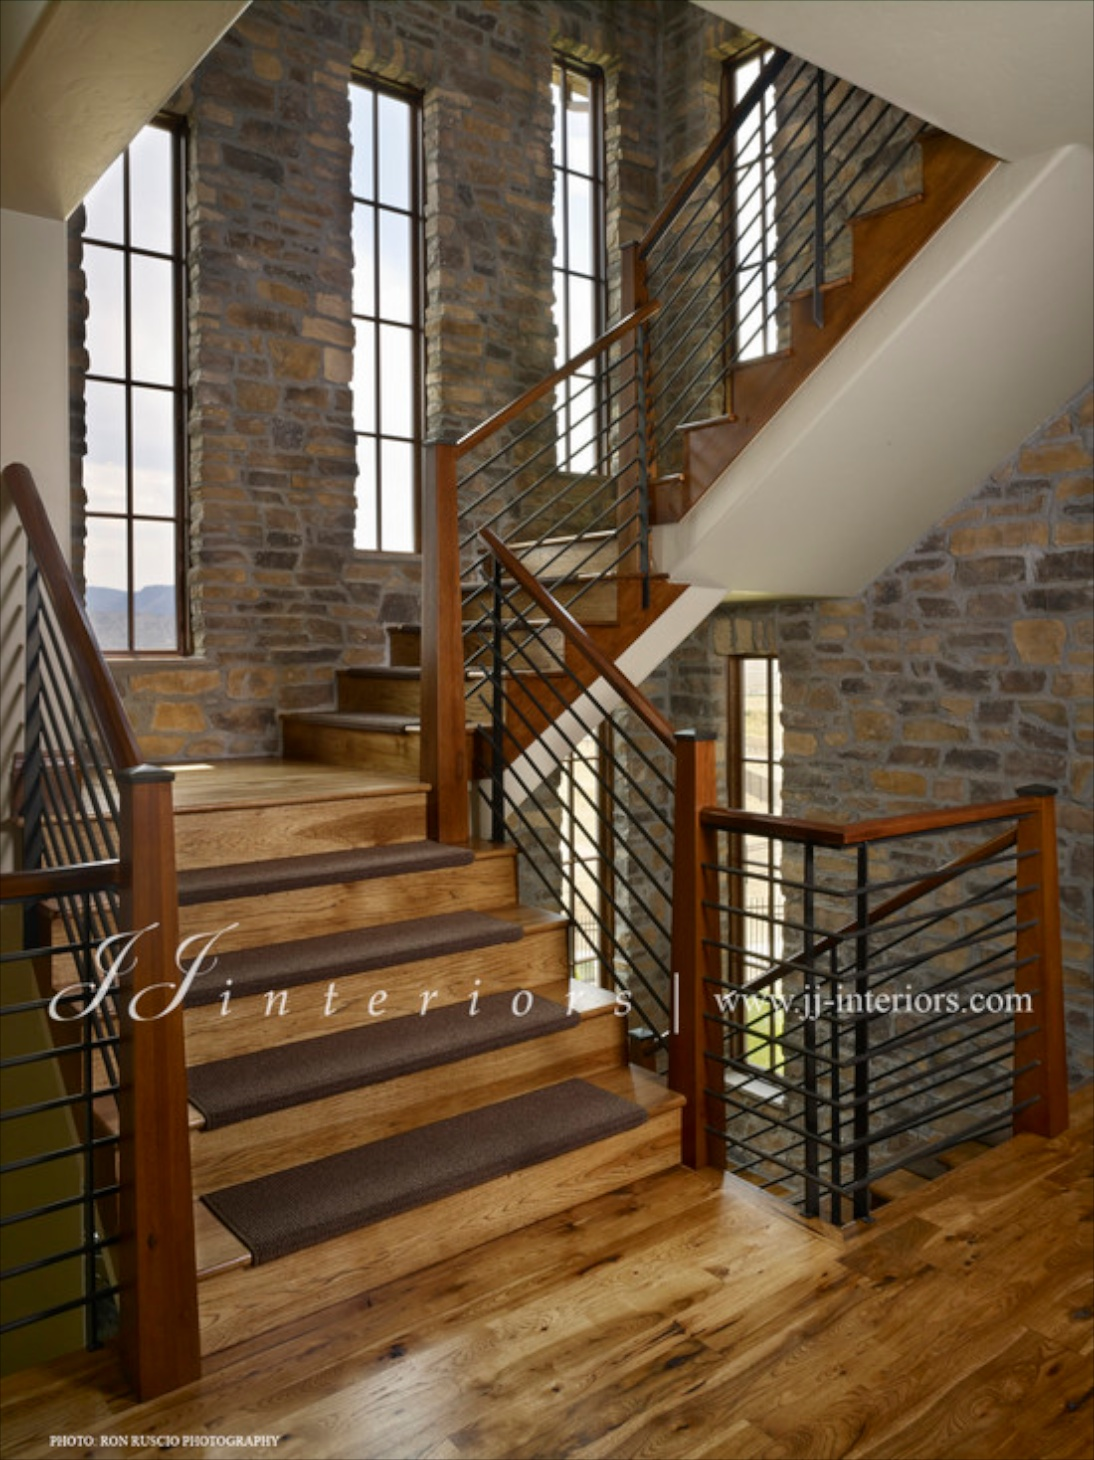 Addhttp://www.houzz.com/Carpet-Stair-Treads a descriptionu2026